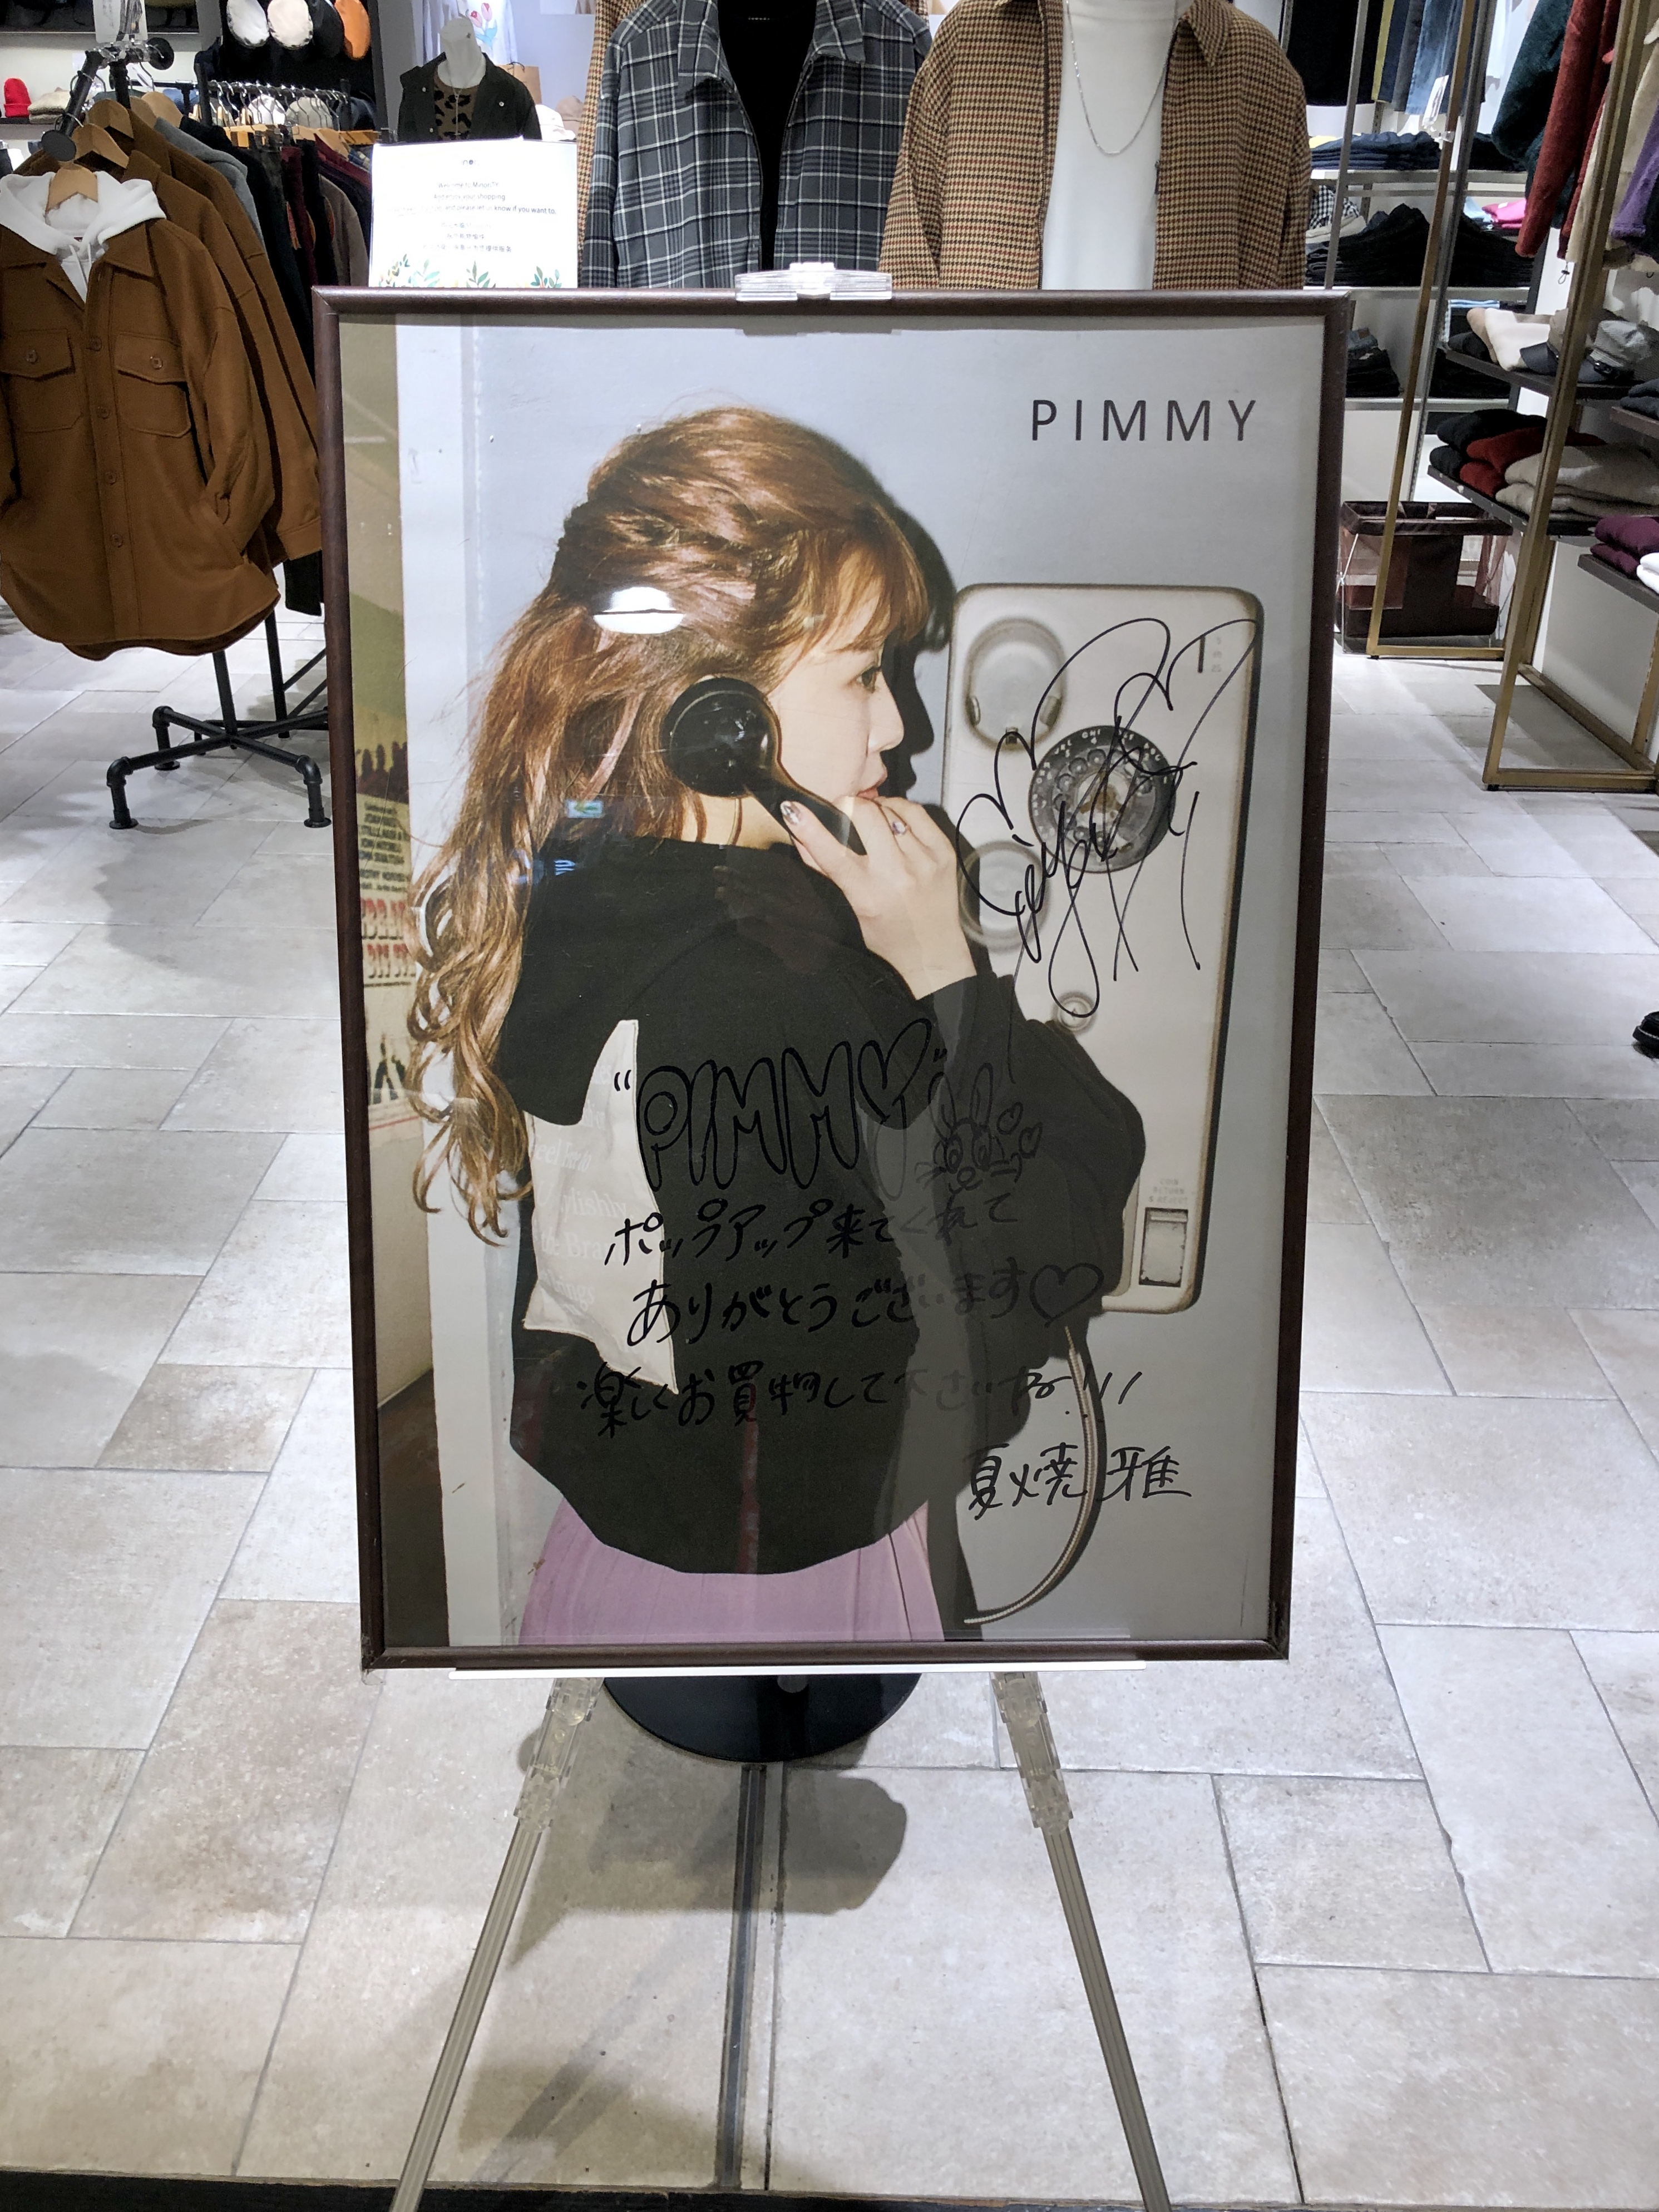 PIMMY's poster